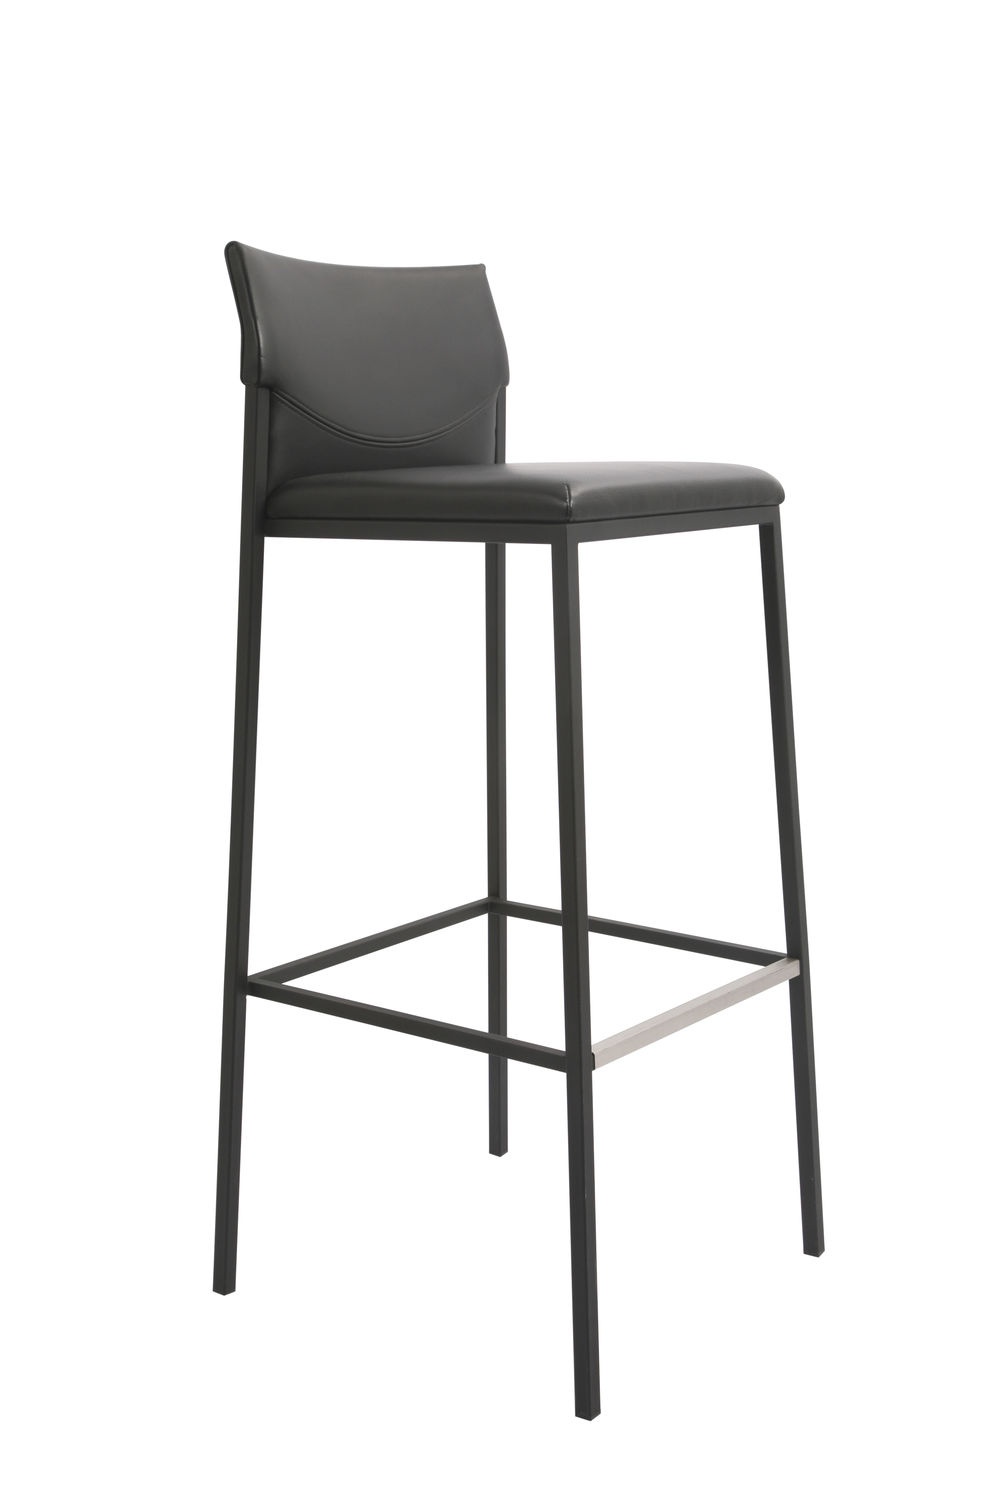 tabouret de bar empilable mobilier design d coration d 39 int rieur. Black Bedroom Furniture Sets. Home Design Ideas